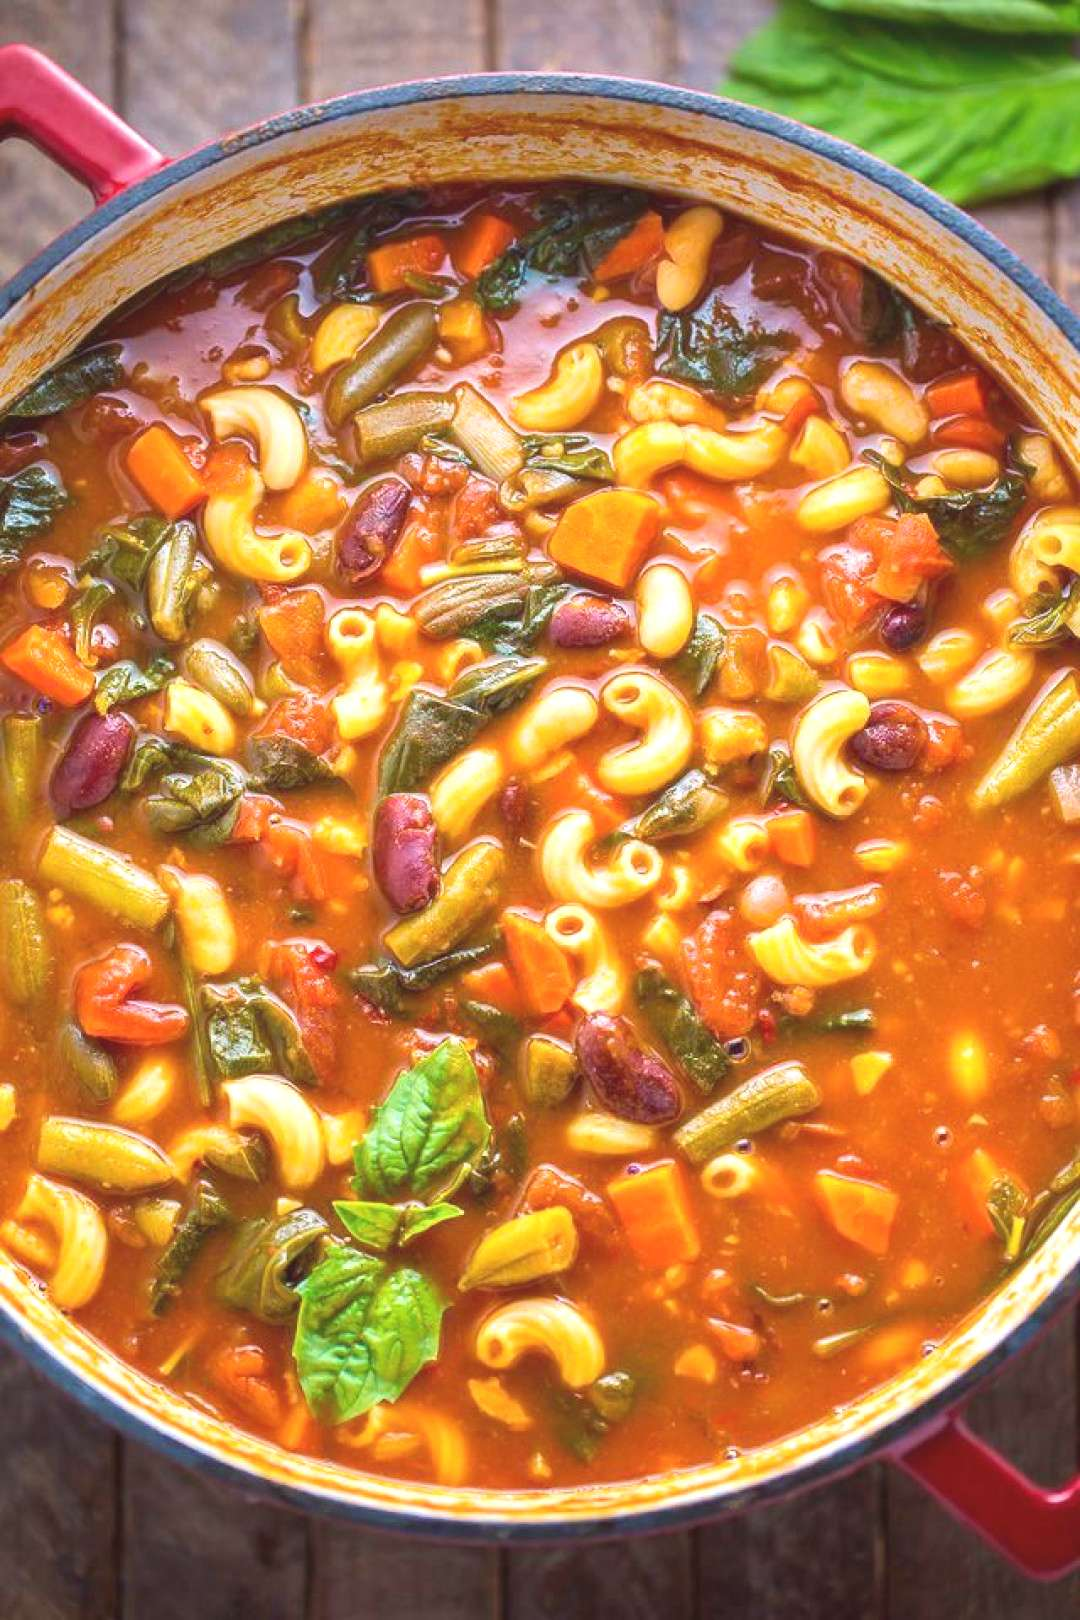 An Italian Soup Of Vitamins Consisting Of Pumpkin, Spinach, Onions, Carrots, Rice, Potatoes And Bak